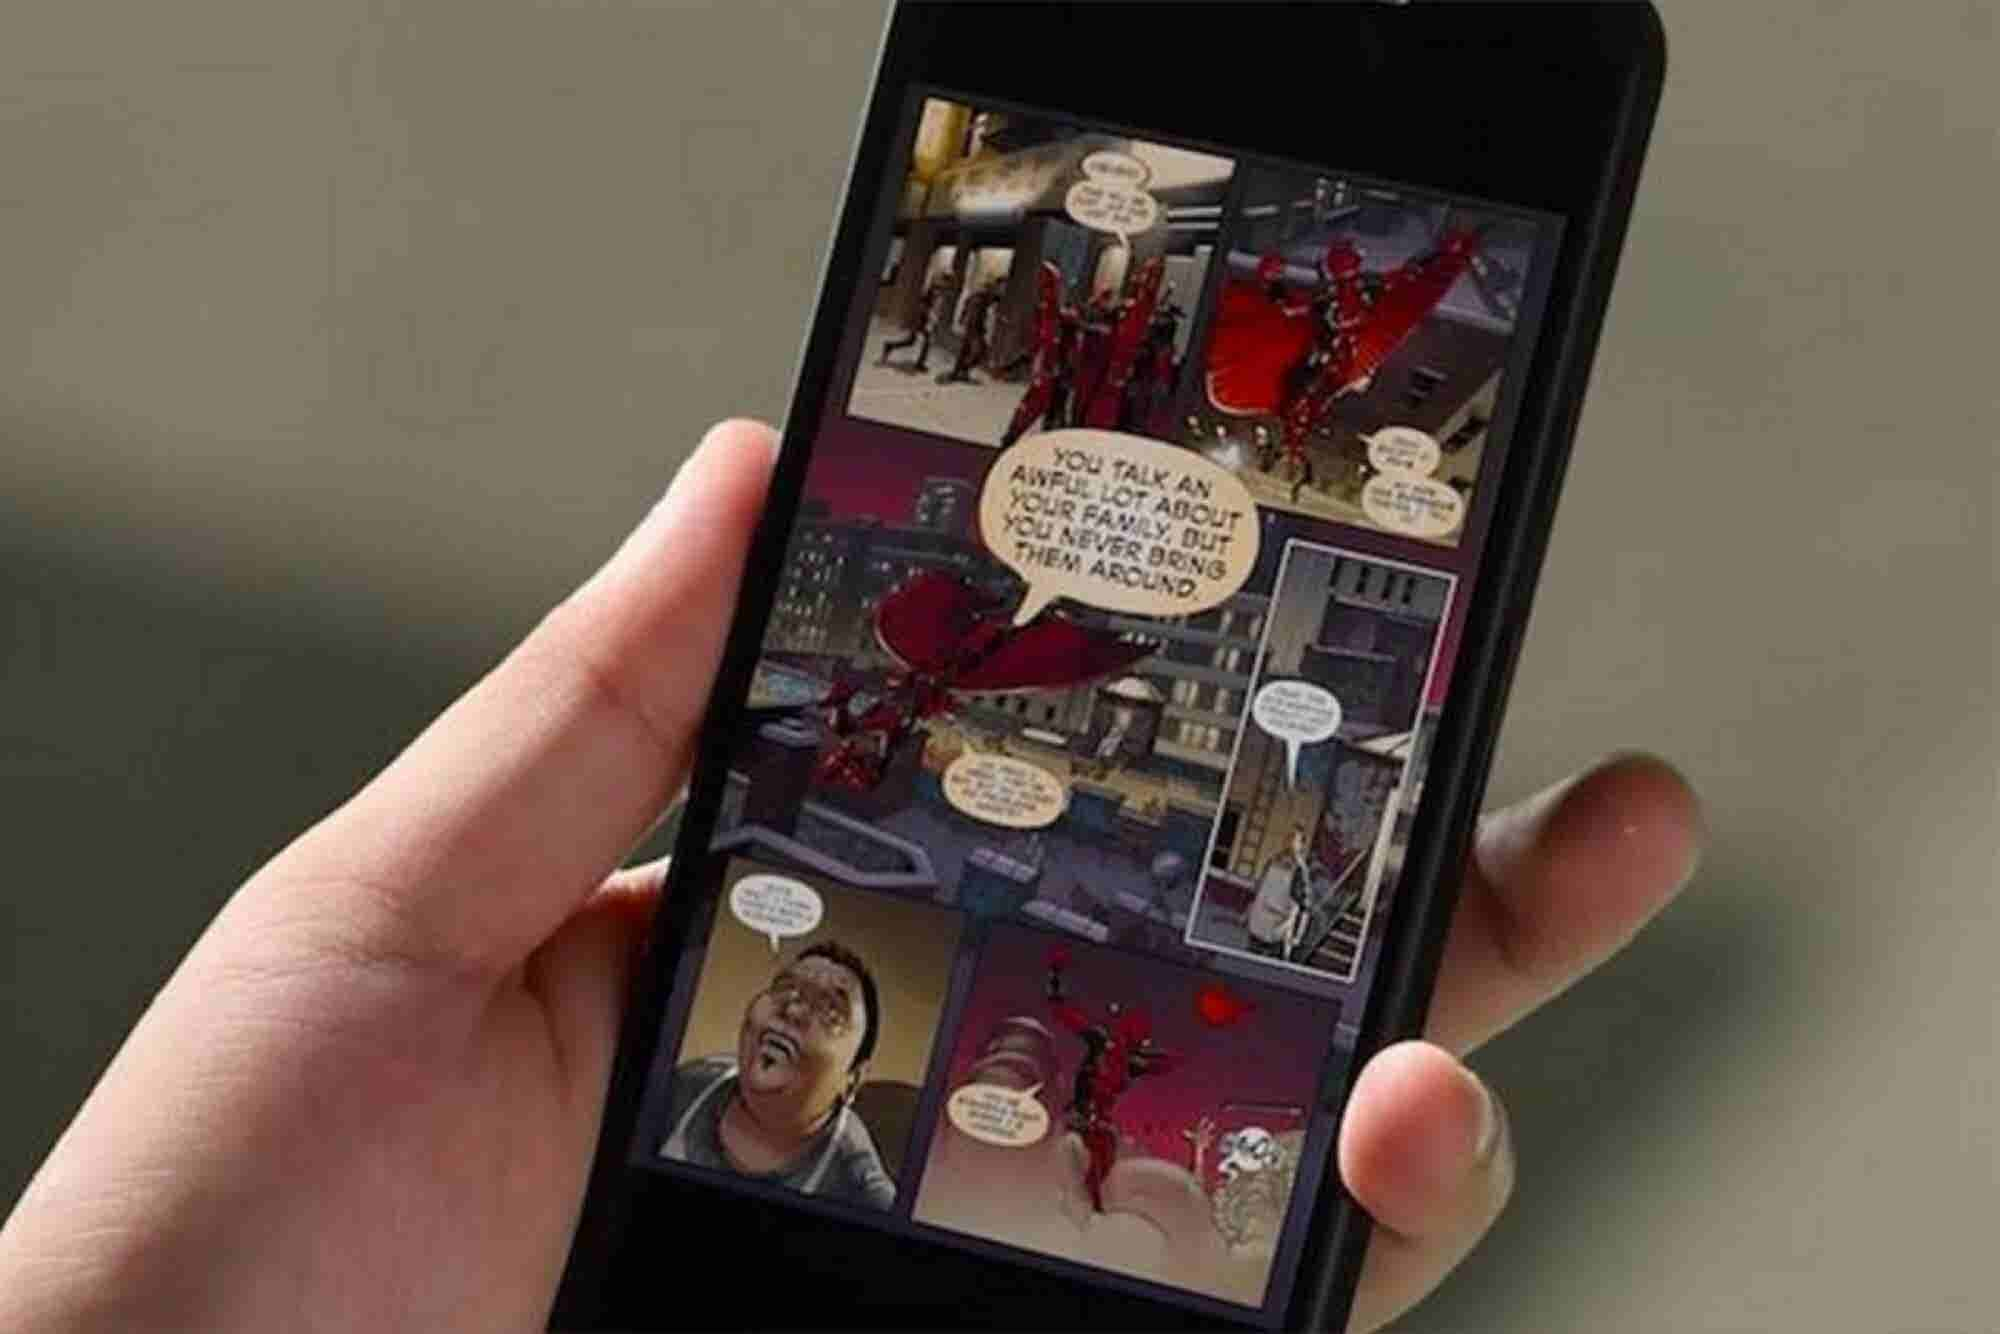 Like Comics? You'll Love This New Android Feature Announced at Comic-Con